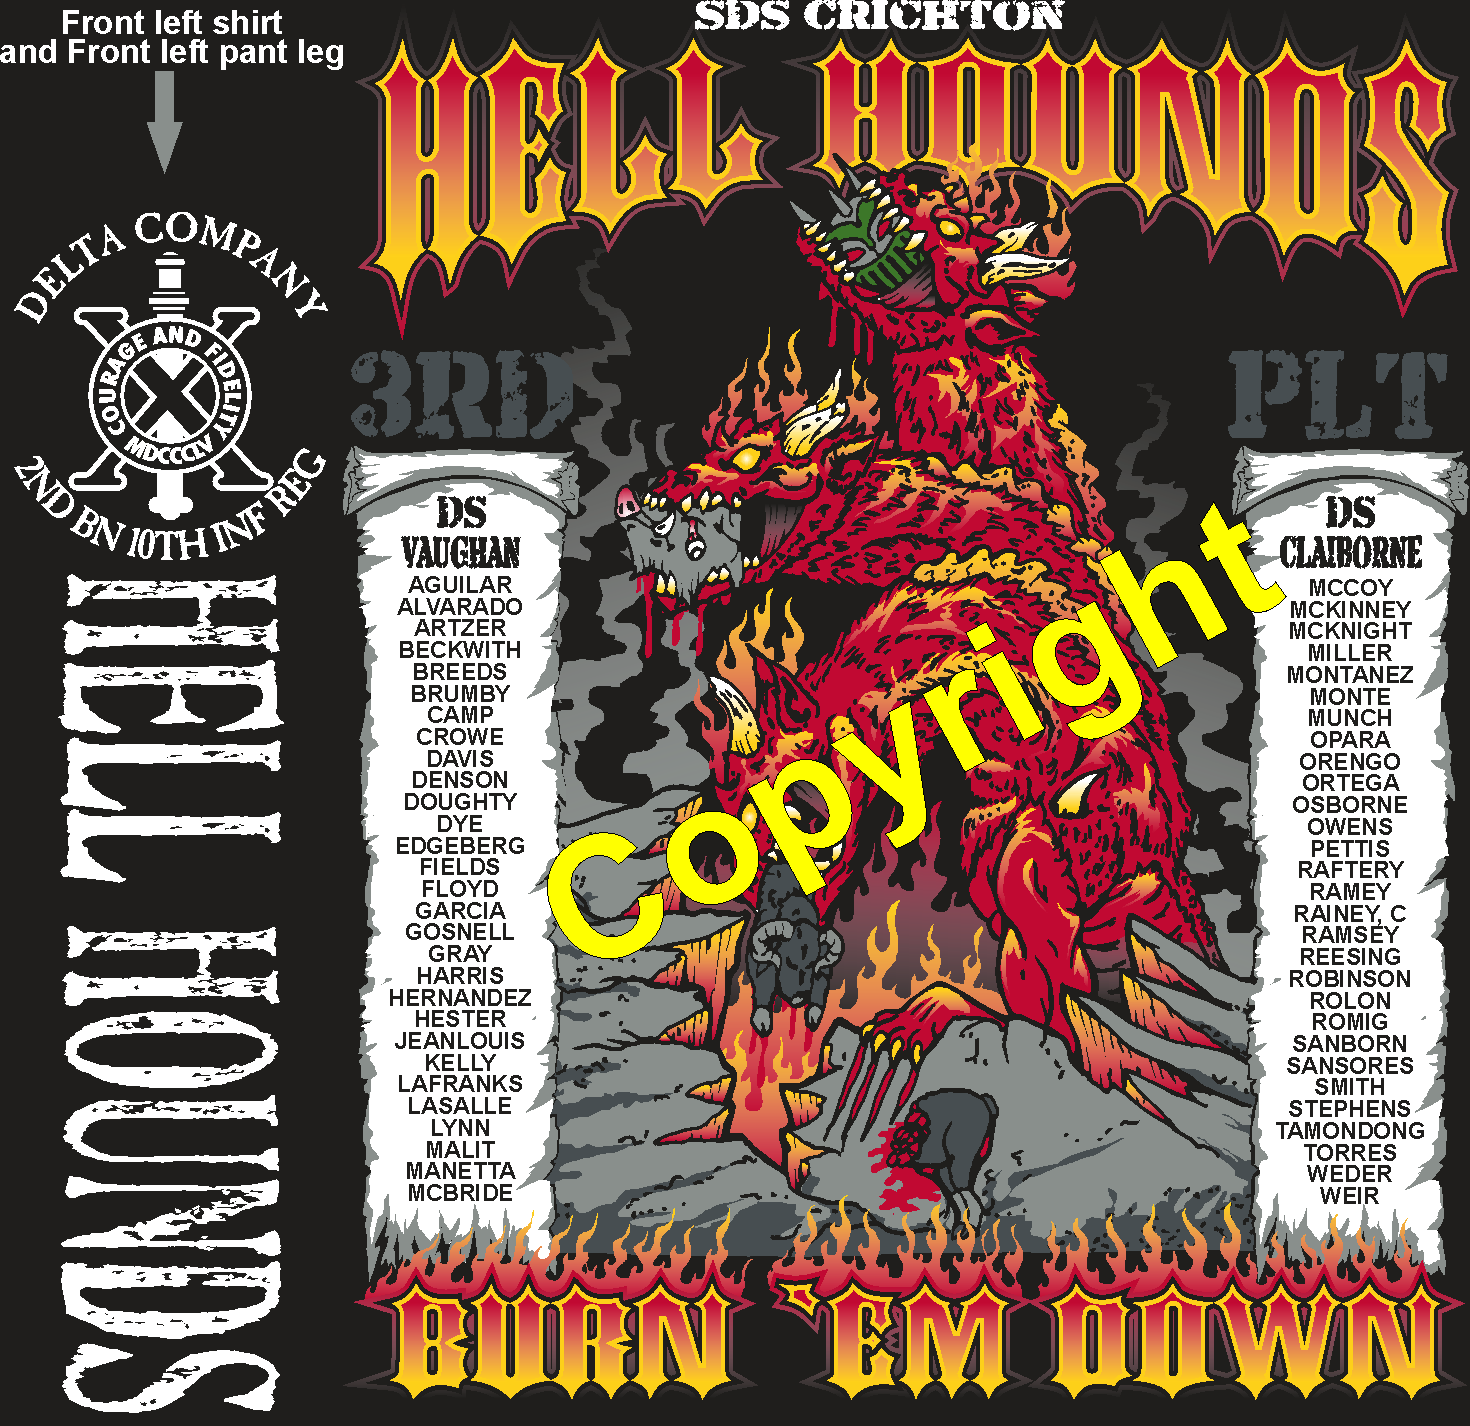 DELTA 210 HELL HOUNDS GRADUATING DAY 8-23-2018 digital